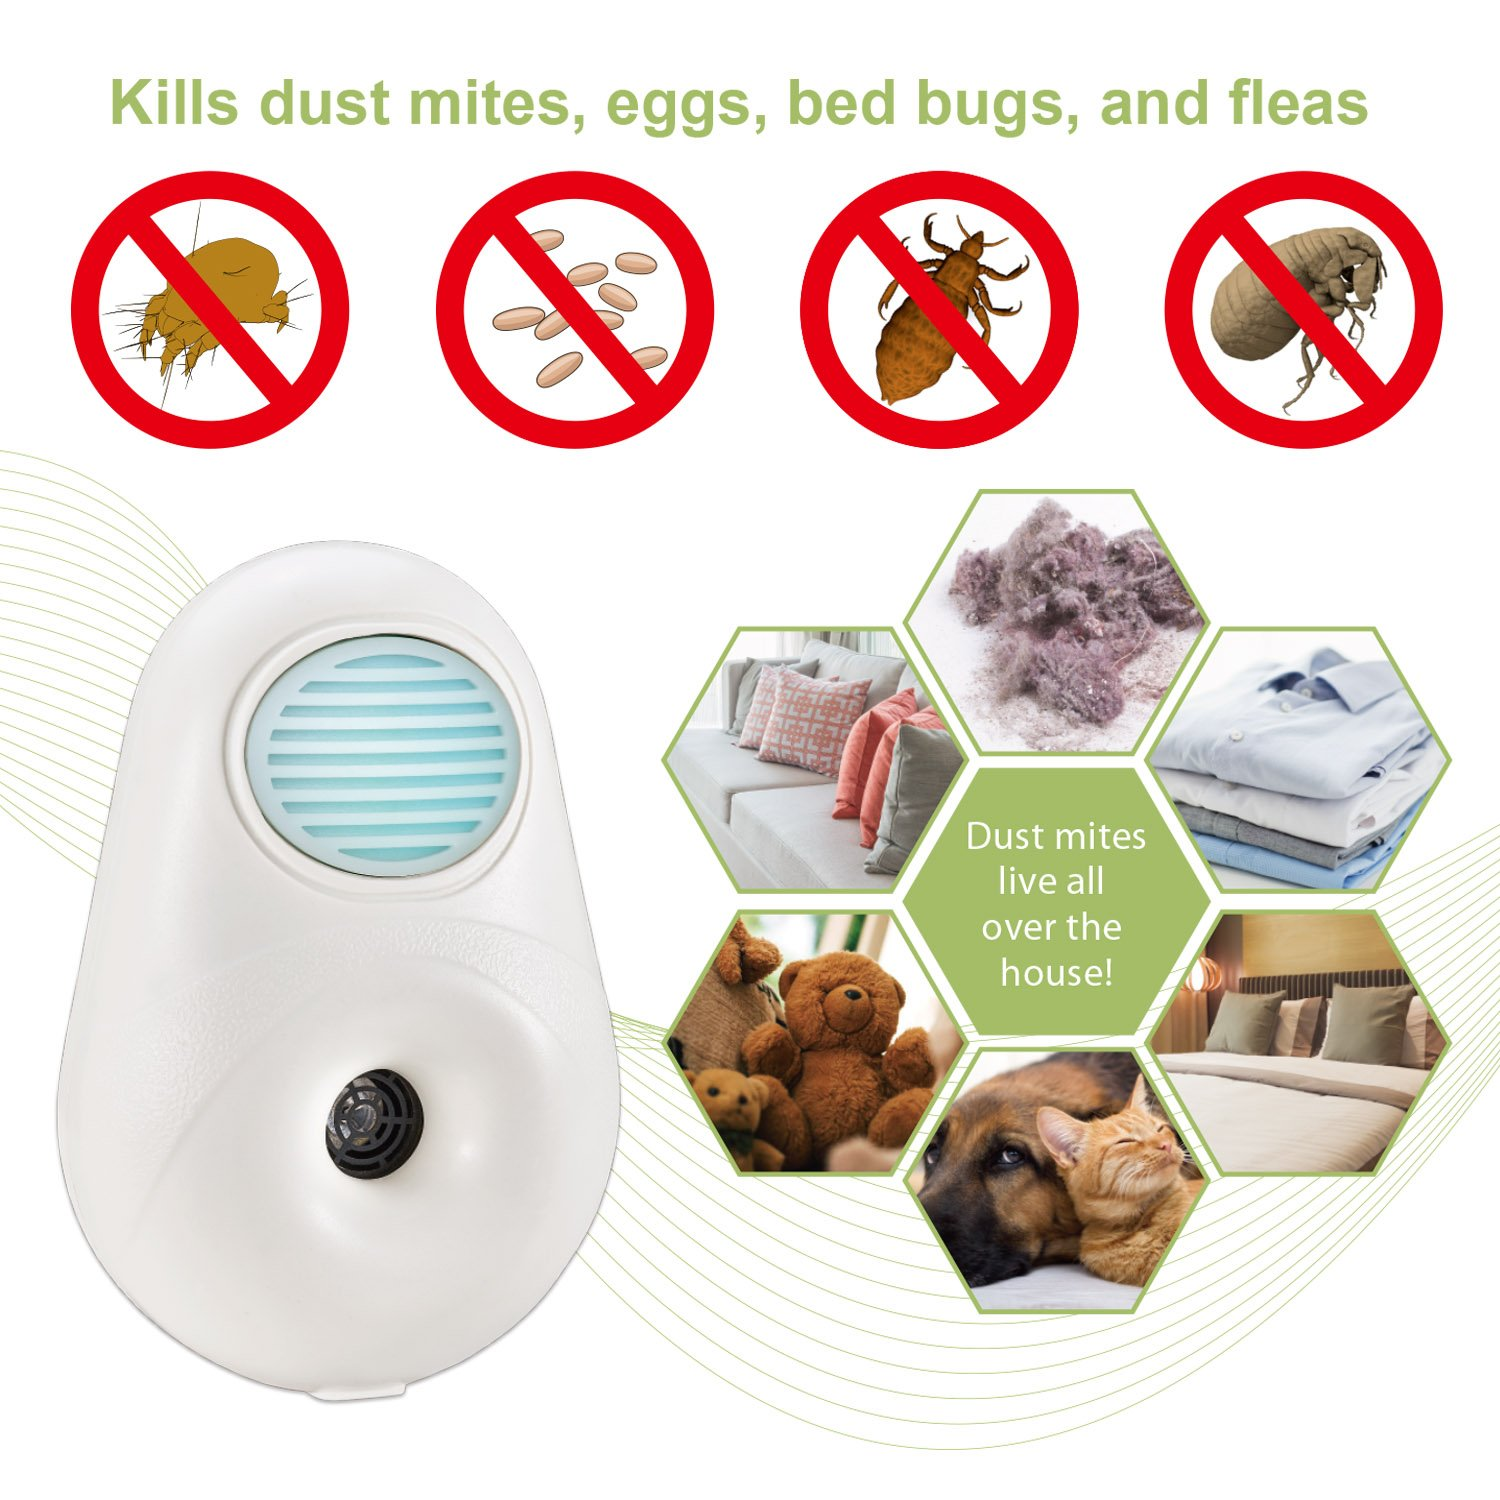 New technology to reduce dust mites: Health & Personal Care